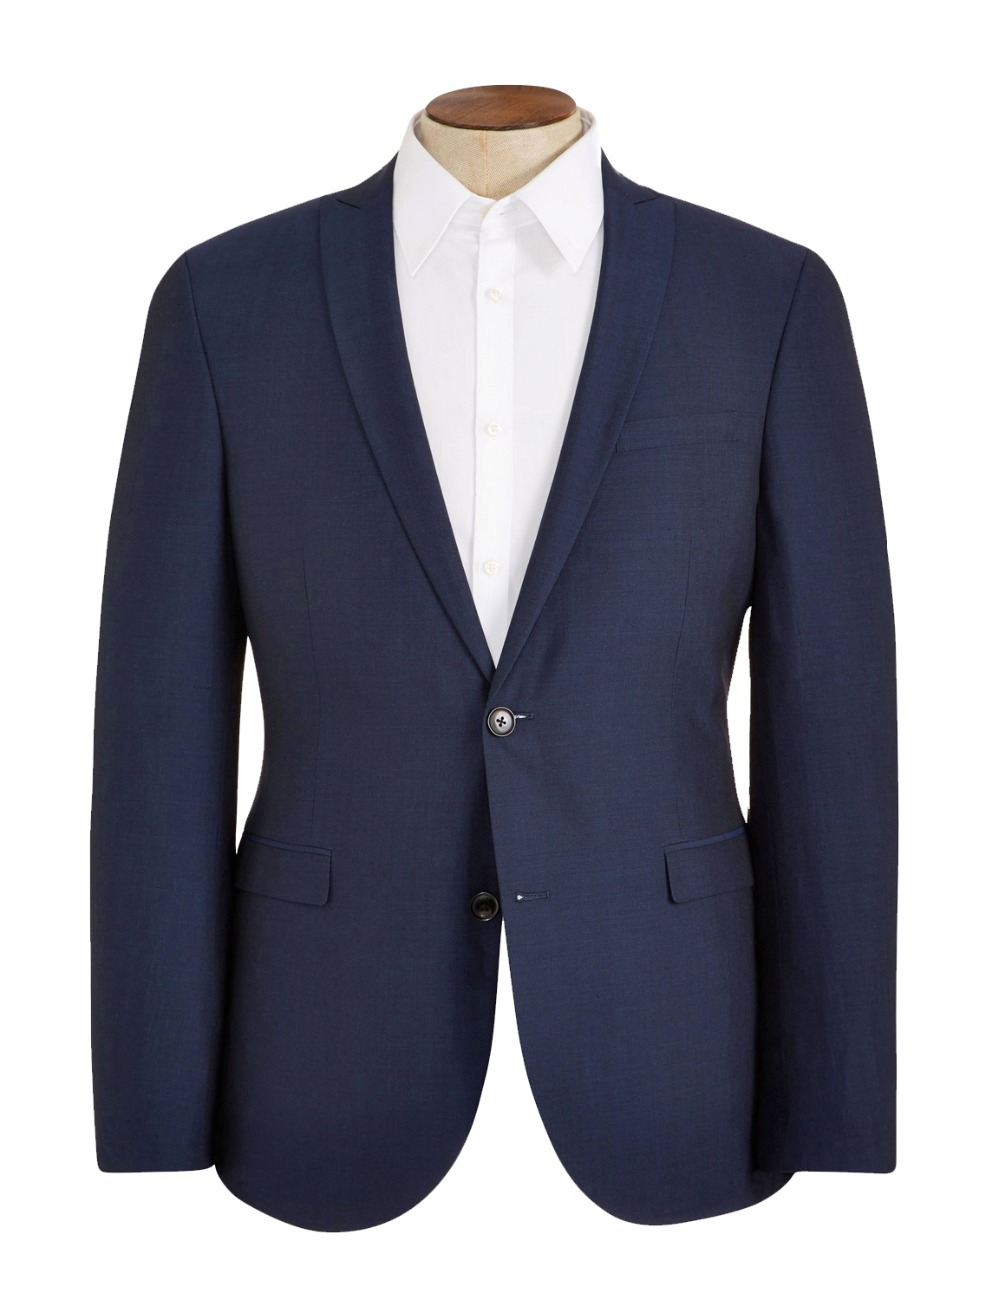 HCF By Air Men's 1 Piece 2 Button Flat Collar Skinny Charm Casual Clothing With New Design Men Suits Jacket Dark Blue